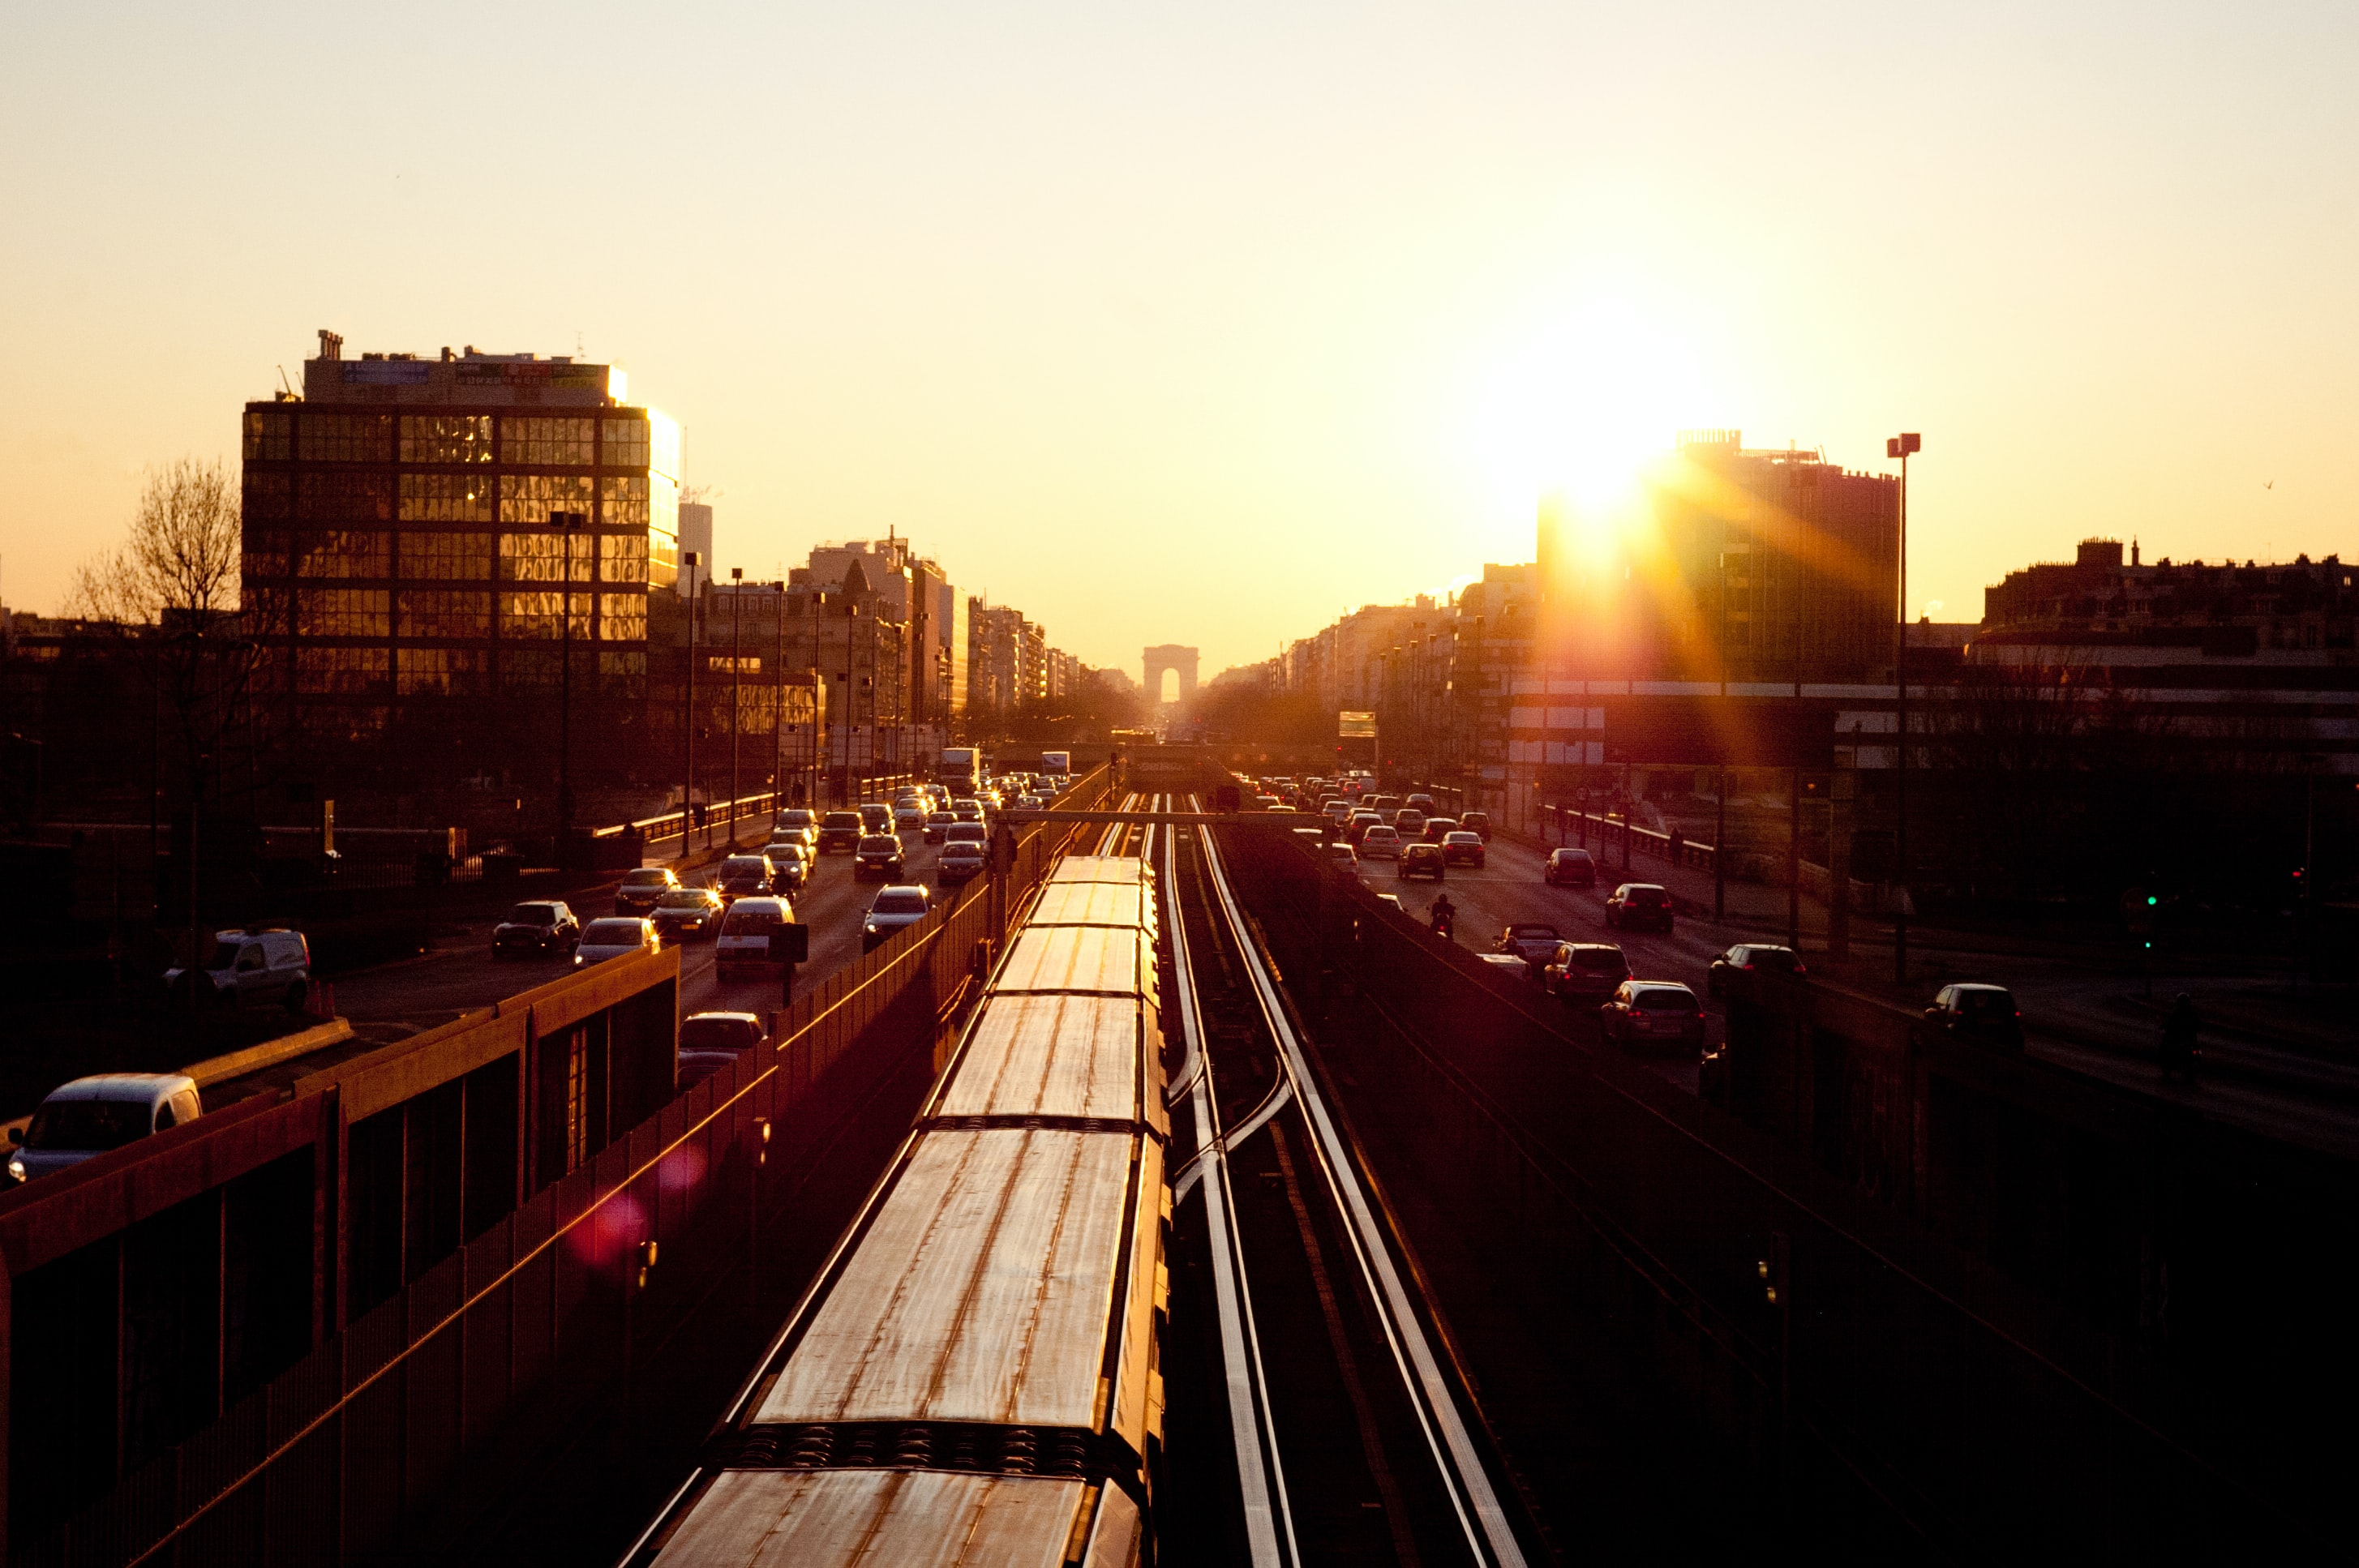 Sunset shines over busy freeway as traffic flows through lanes